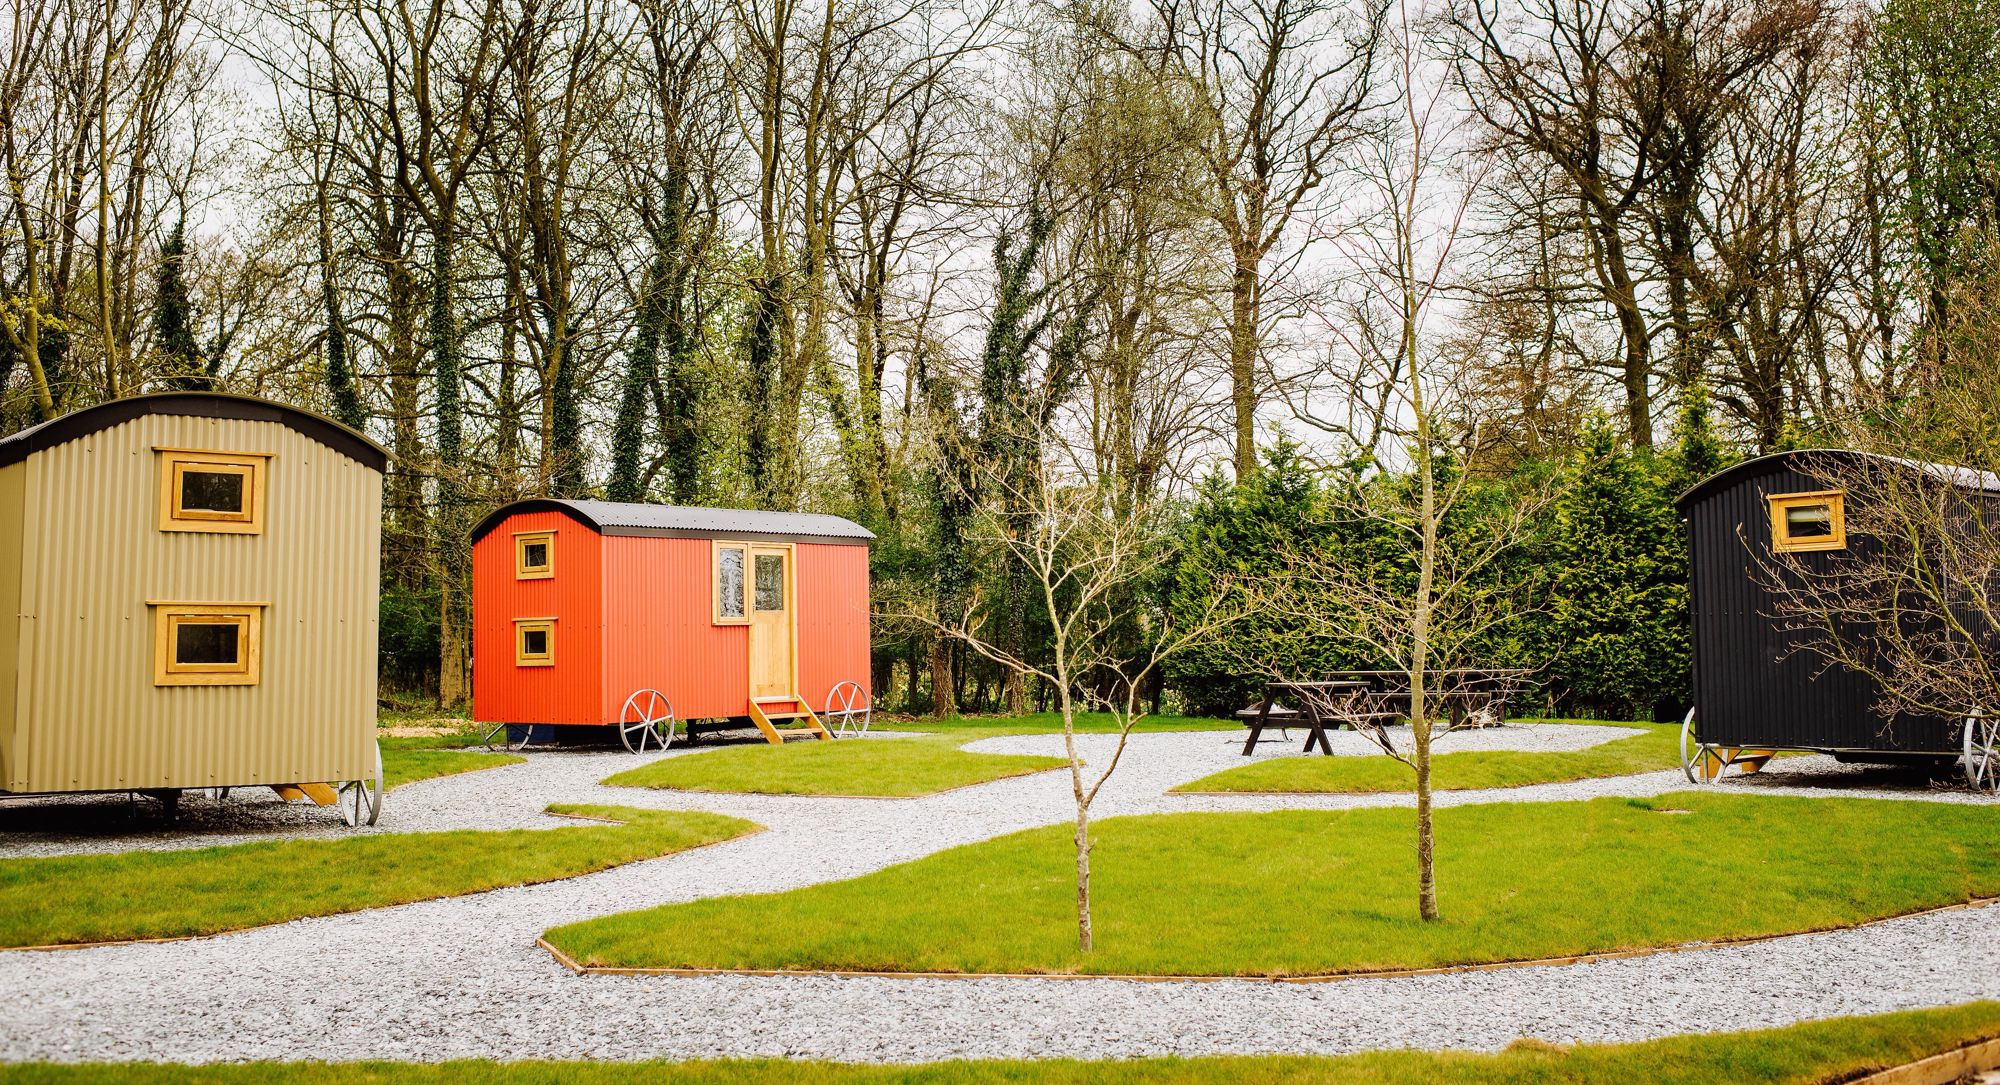 Glamping Sites Open All Year – Winter Glamping